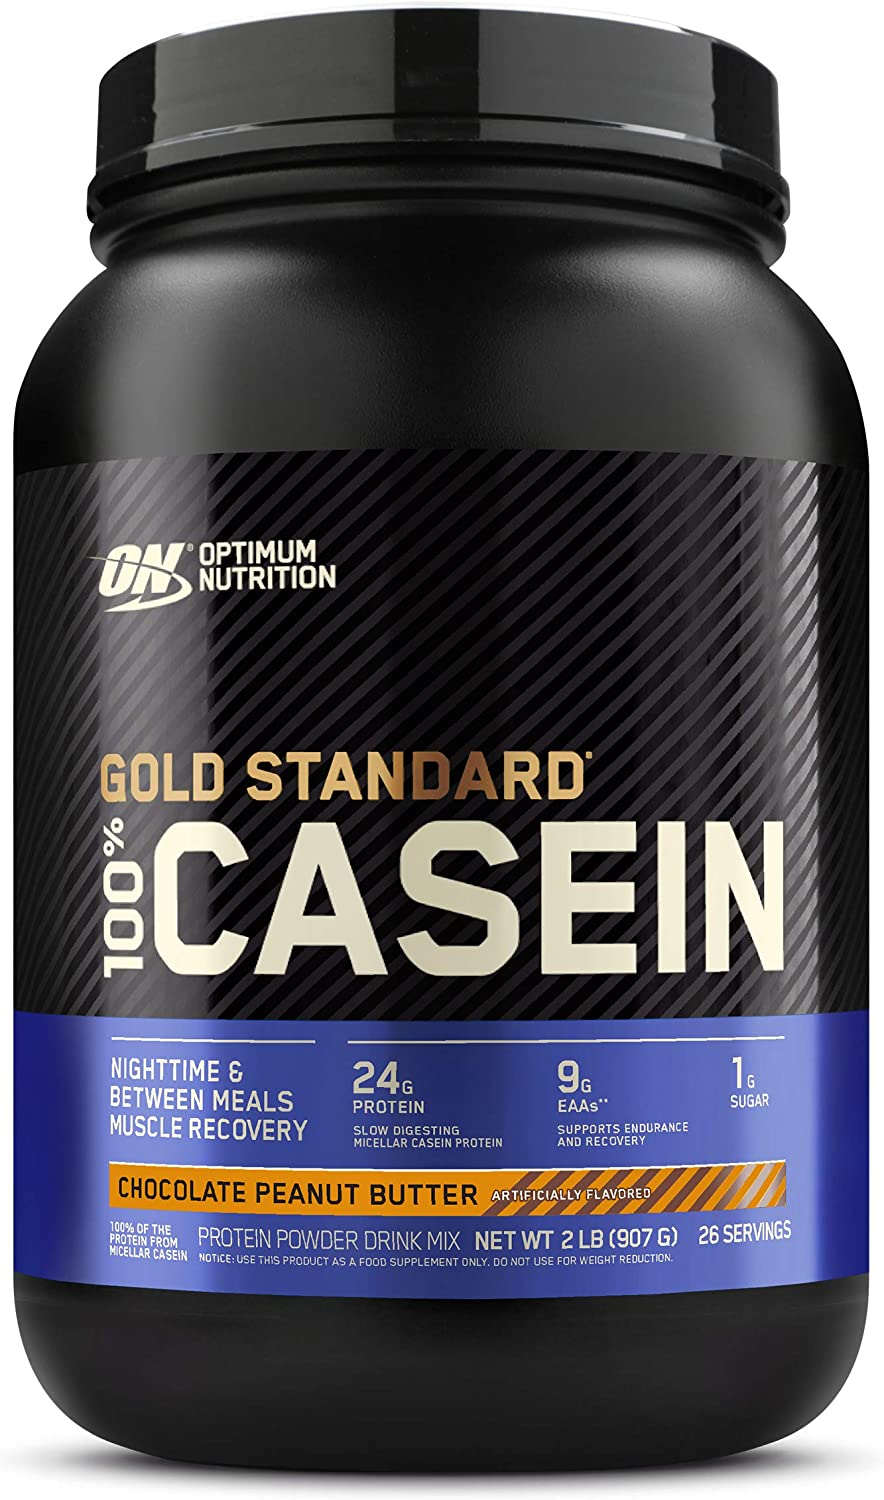 Optimum Nutrition Gold Standard 100% Micellar Casein Protein Powder, Slow Digesting, Helps Keep You Full, Overnight Muscle Recovery, Chocolate Peanut Butter, 2 Pound (Packaging May Vary)